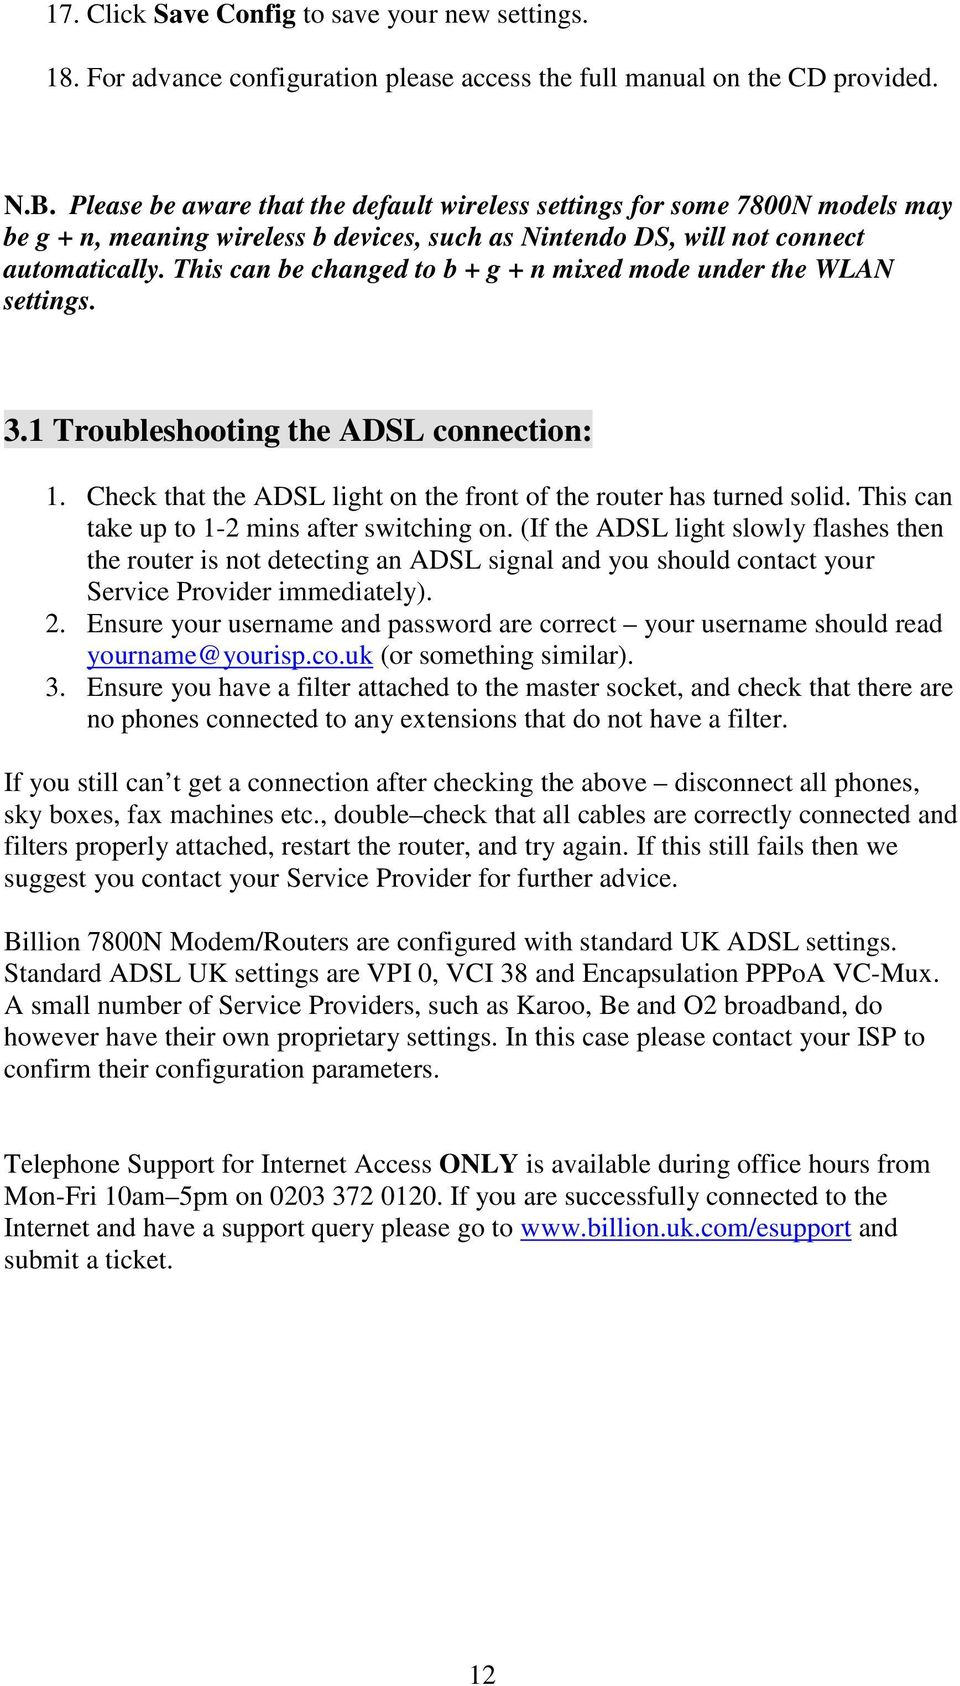 This can be changed to b + g + n mixed mode under the WLAN settings. 3.1 Troubleshooting the ADSL connection: 1. Check that the ADSL light on the front of the router has turned solid.